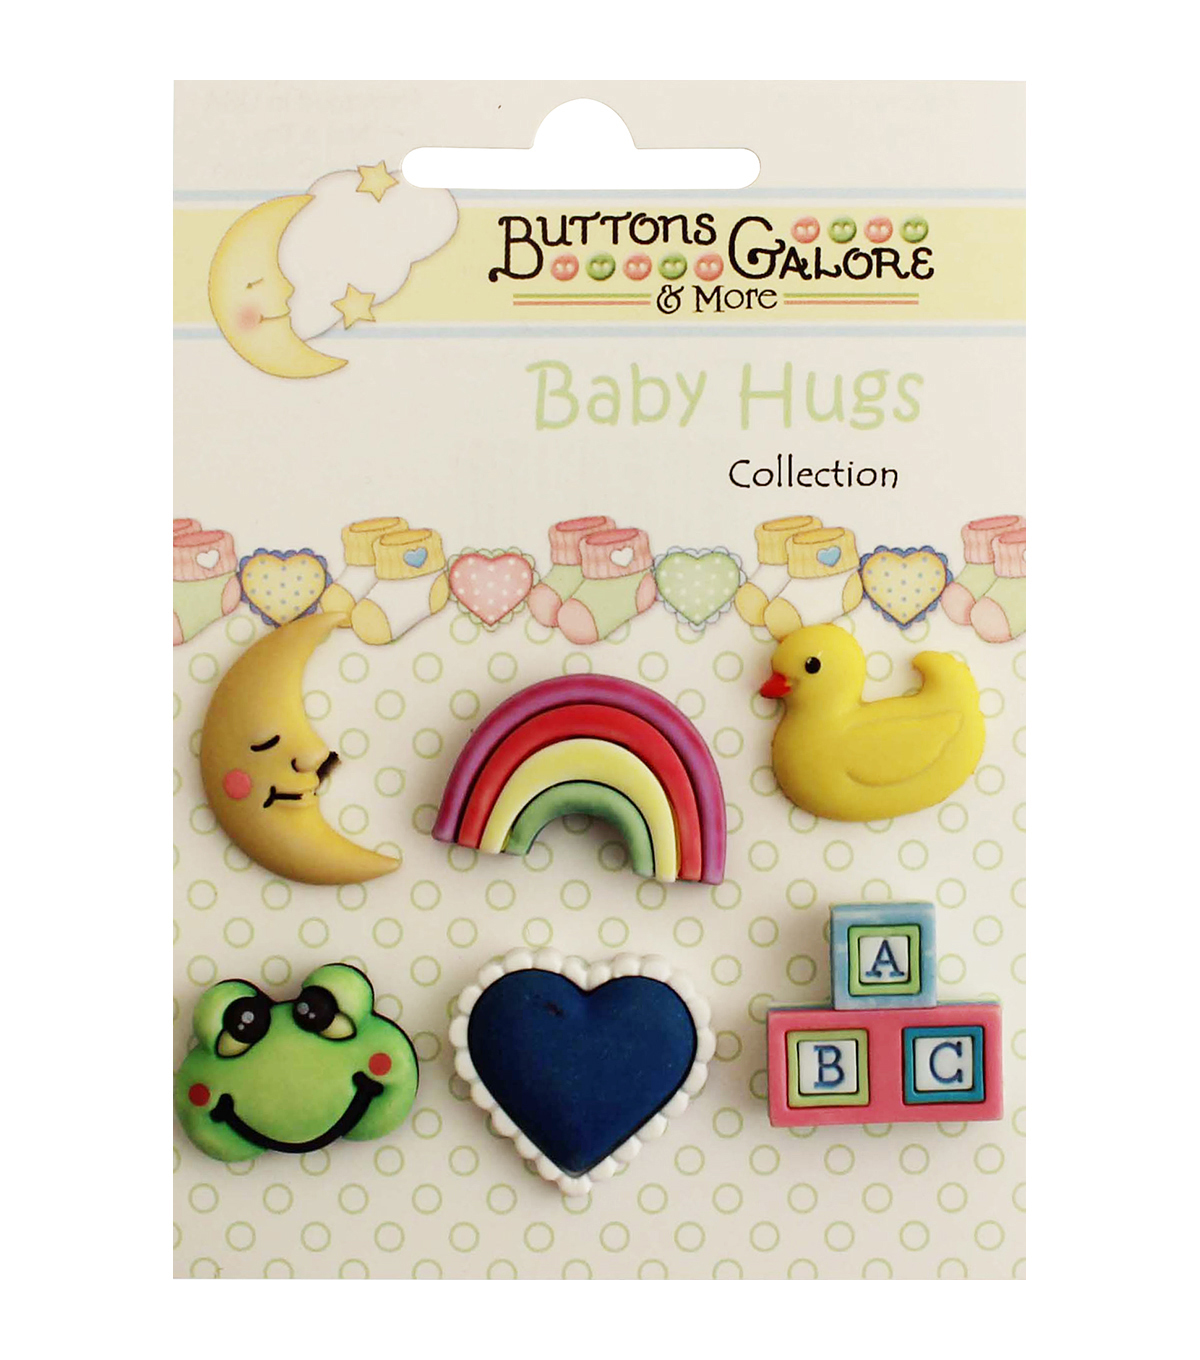 Buttons Galore Baby Hugs Nursery Time Buttons